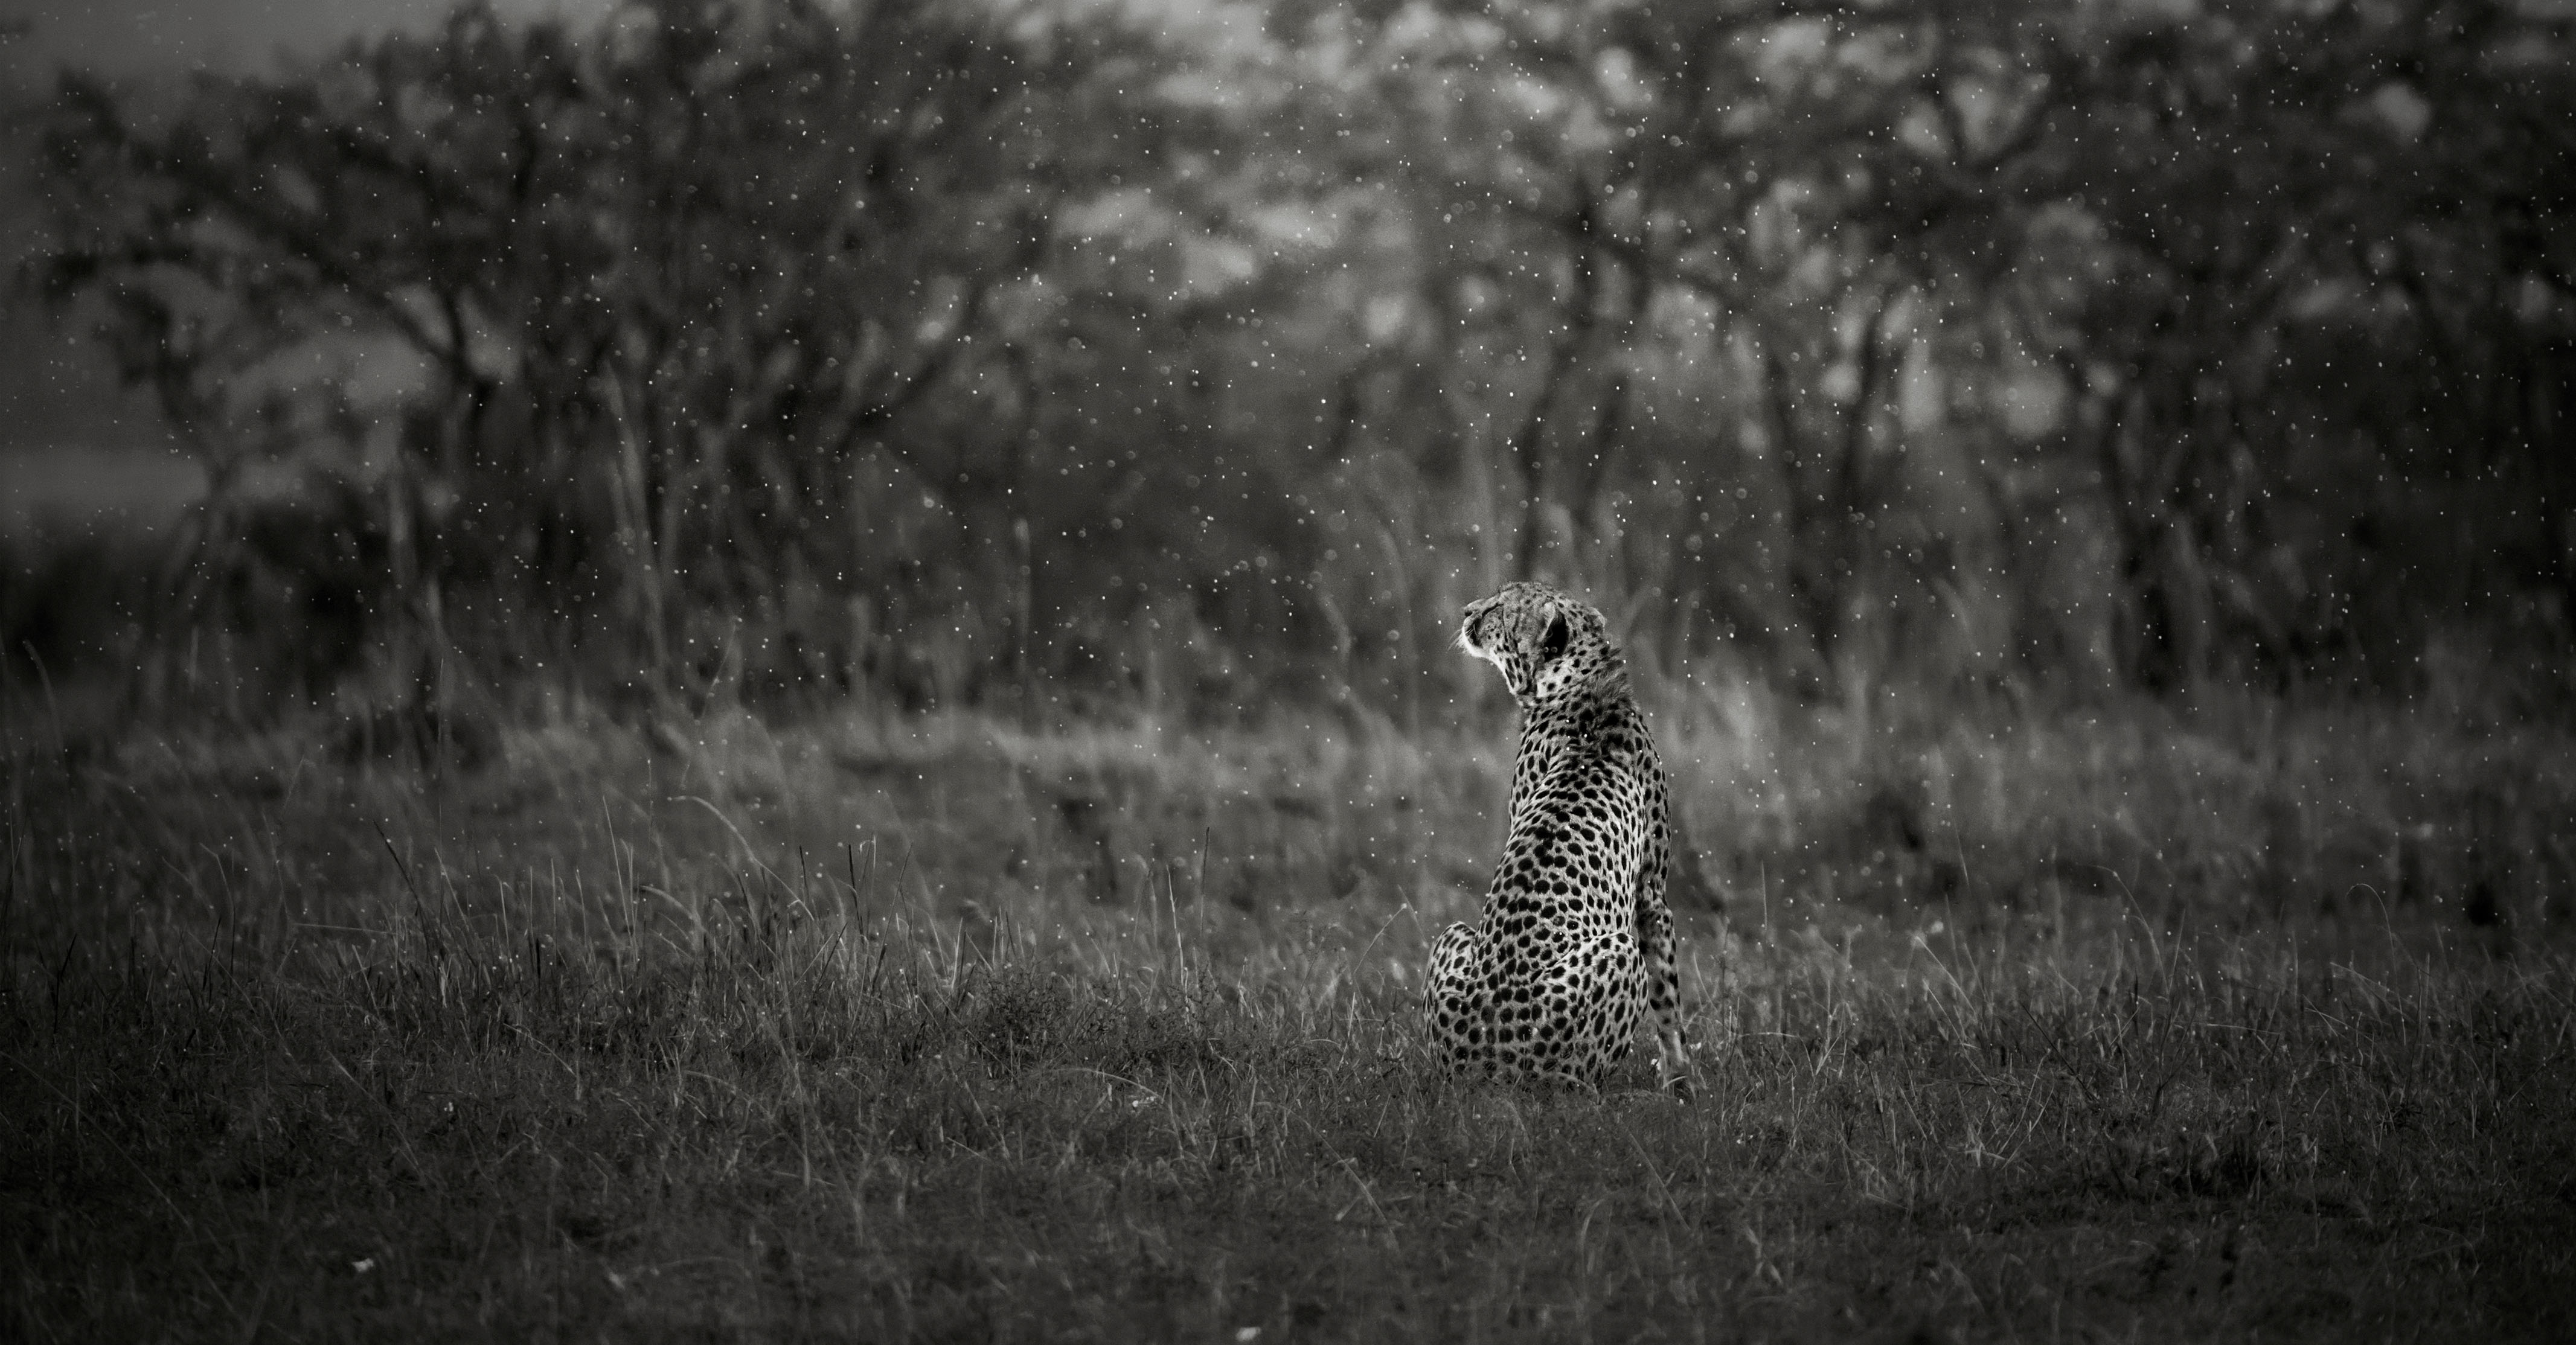 Malaika's cub in heavy rain as captured by photo tour leader ClementWild